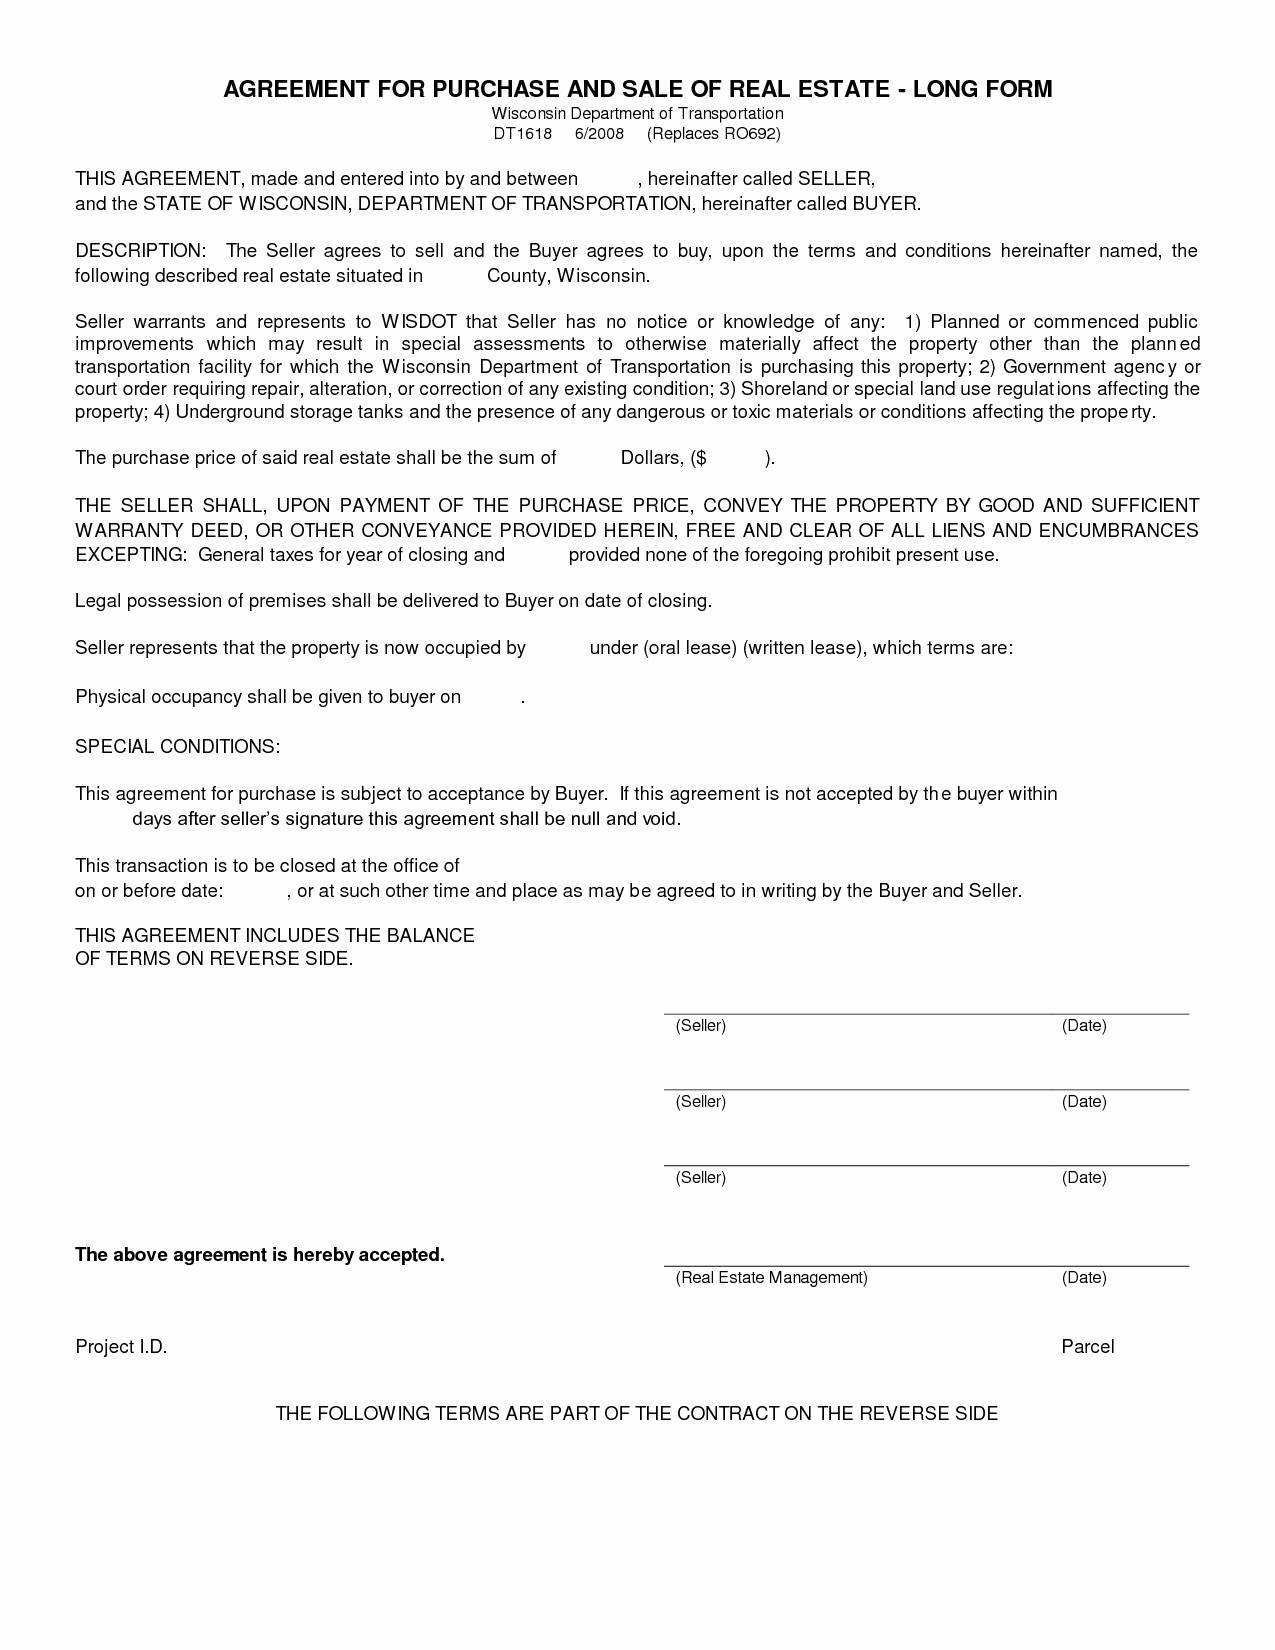 Tenant Eviction Letter Template - Tenant Eviction Letter Template Luxury Blank Purchase Agreement Pdf